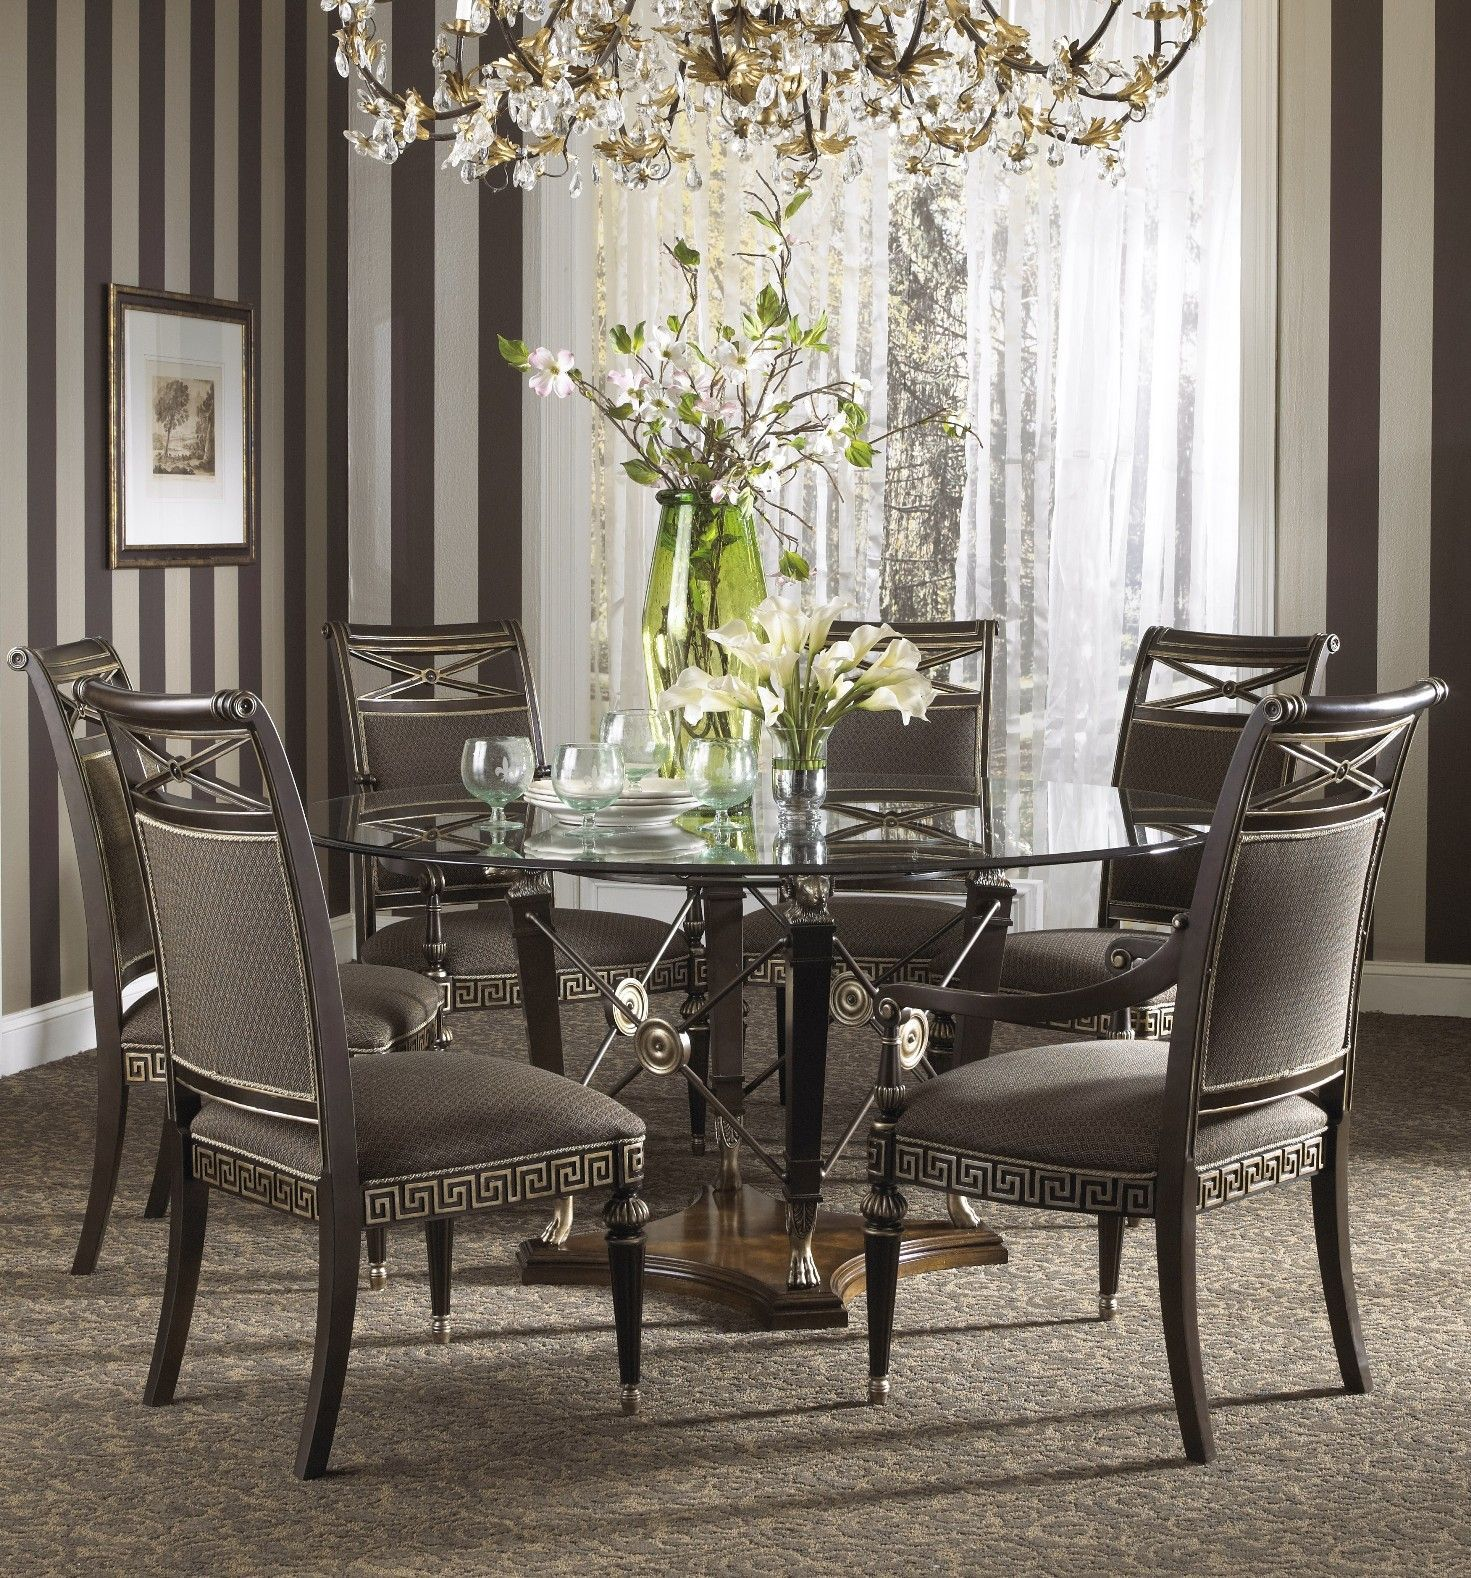 Buying Dining Room Furniture U2013 What Useful Tips To Consider While Shopping  #luxurydiningroom